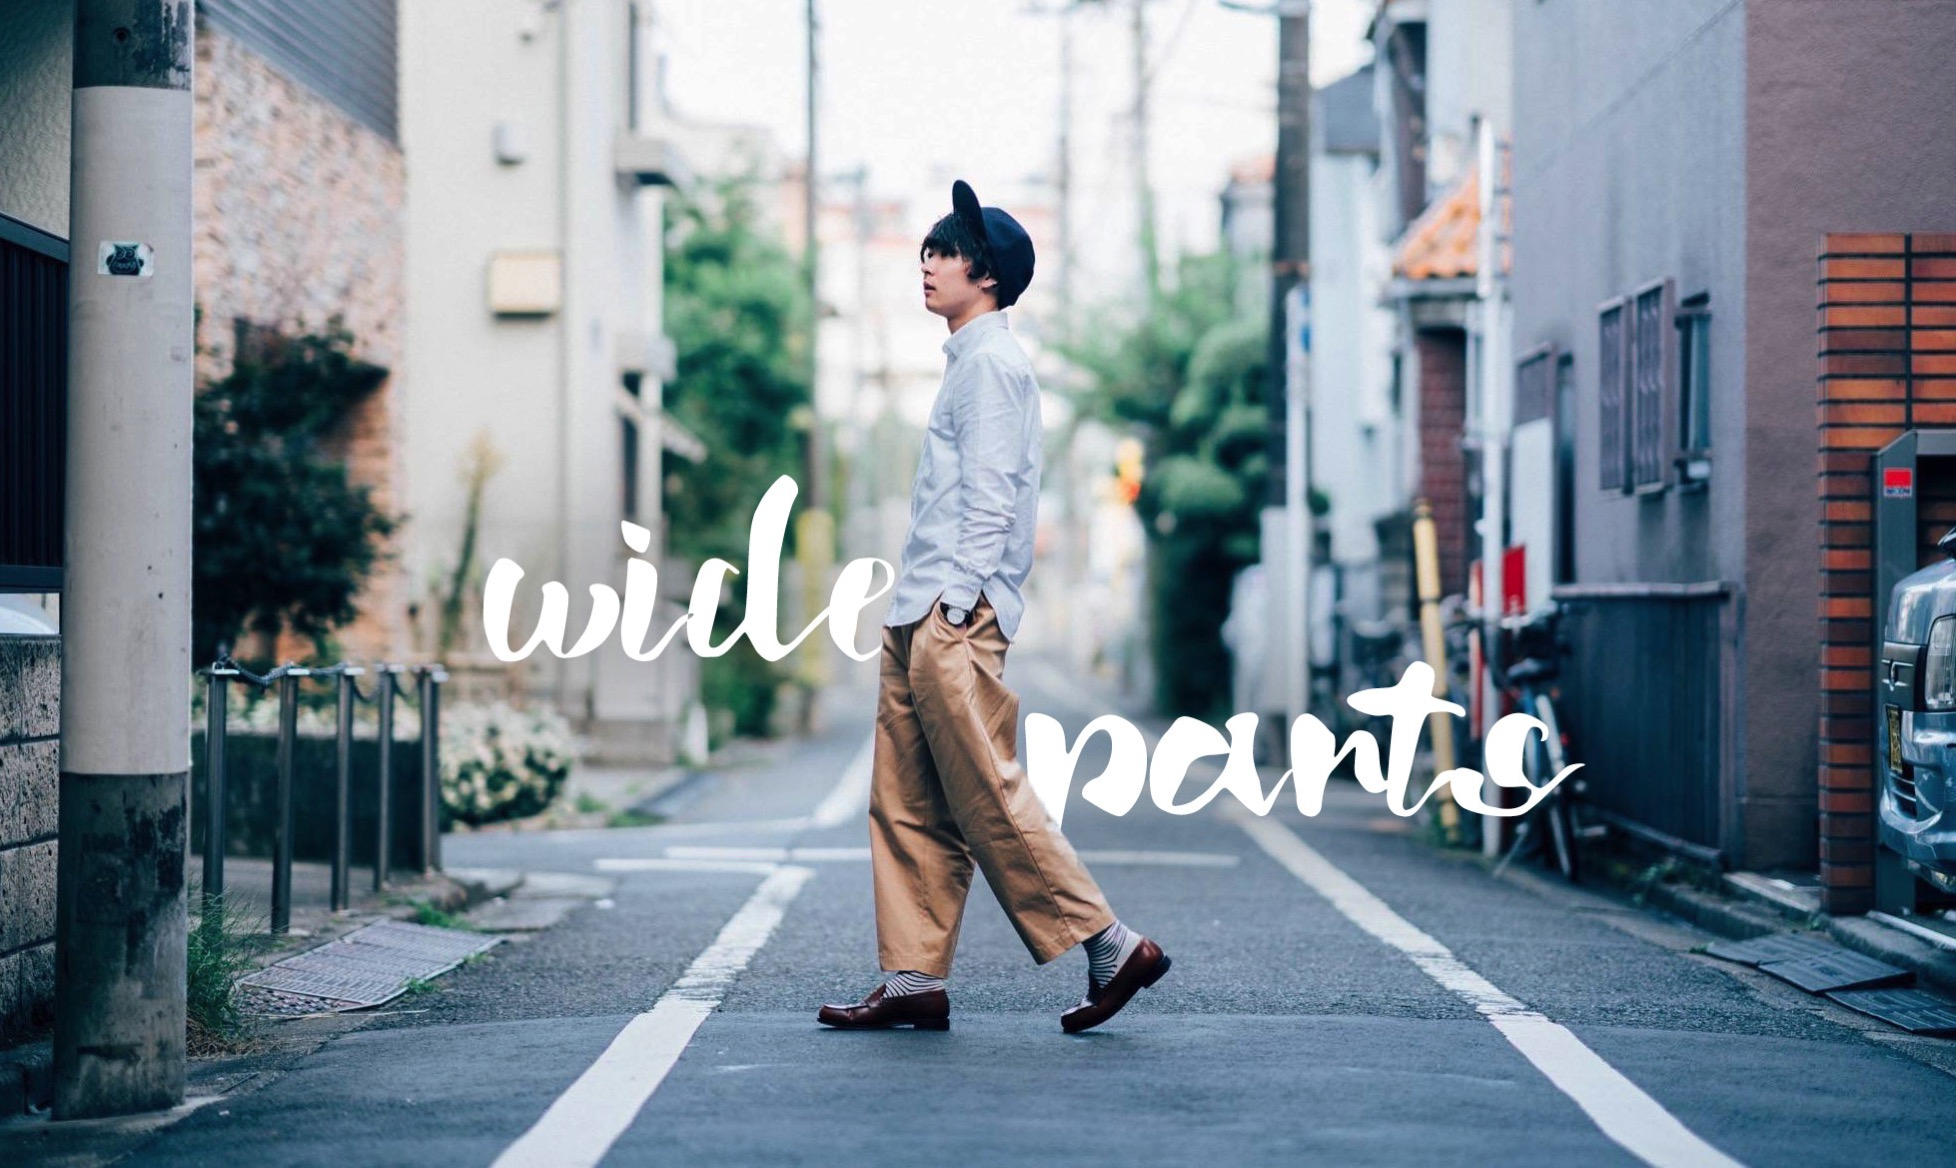 Widepants mens Coordinate top